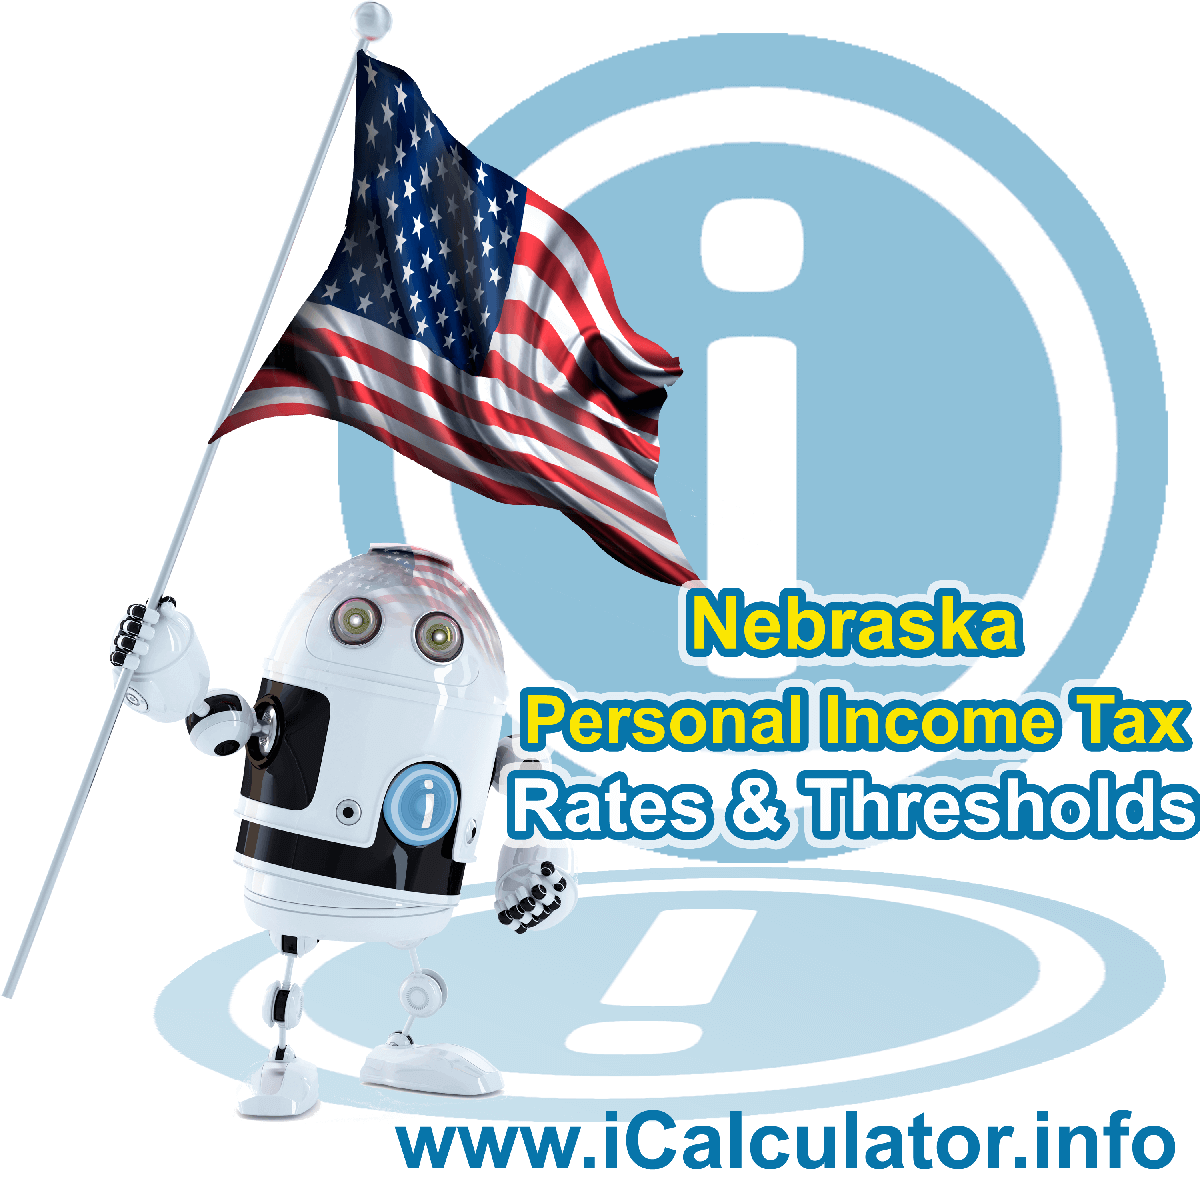 Nebraska State Tax Tables 2019. This image displays details of the Nebraska State Tax Tables for the 2019 tax return year which is provided in support of the 2019 US Tax Calculator